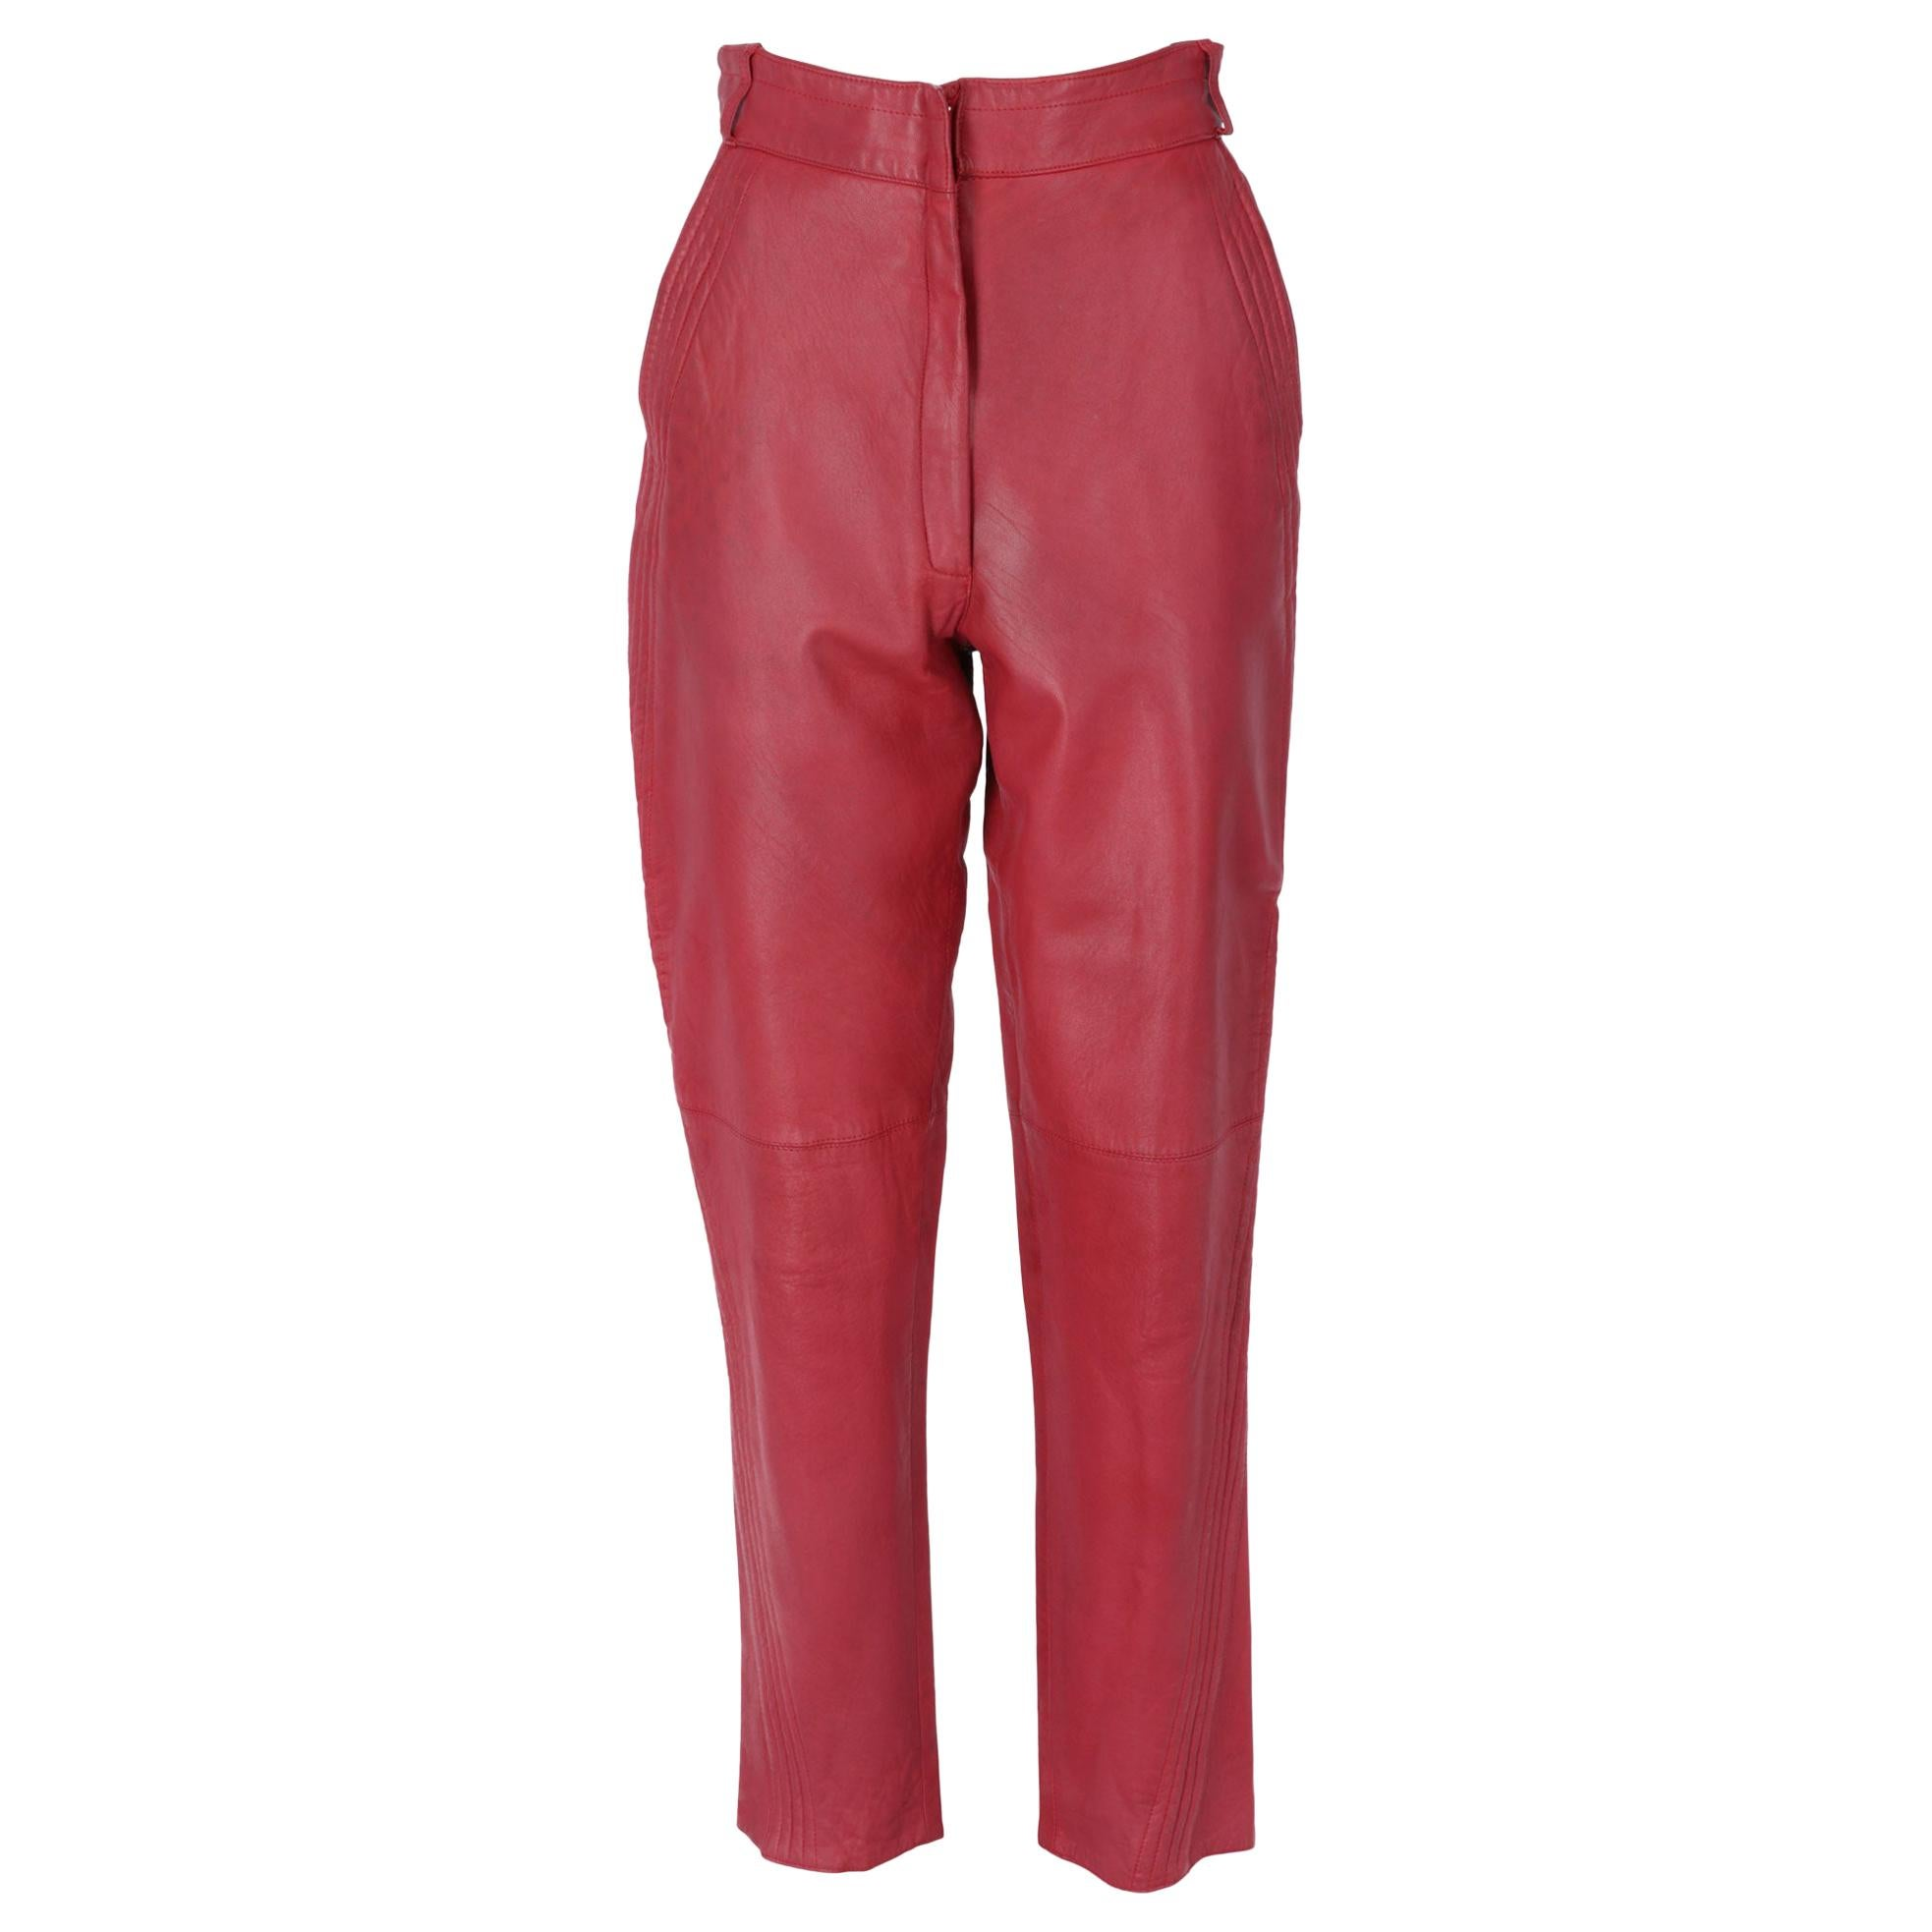 1980s Gianni Versace Leather Trousers